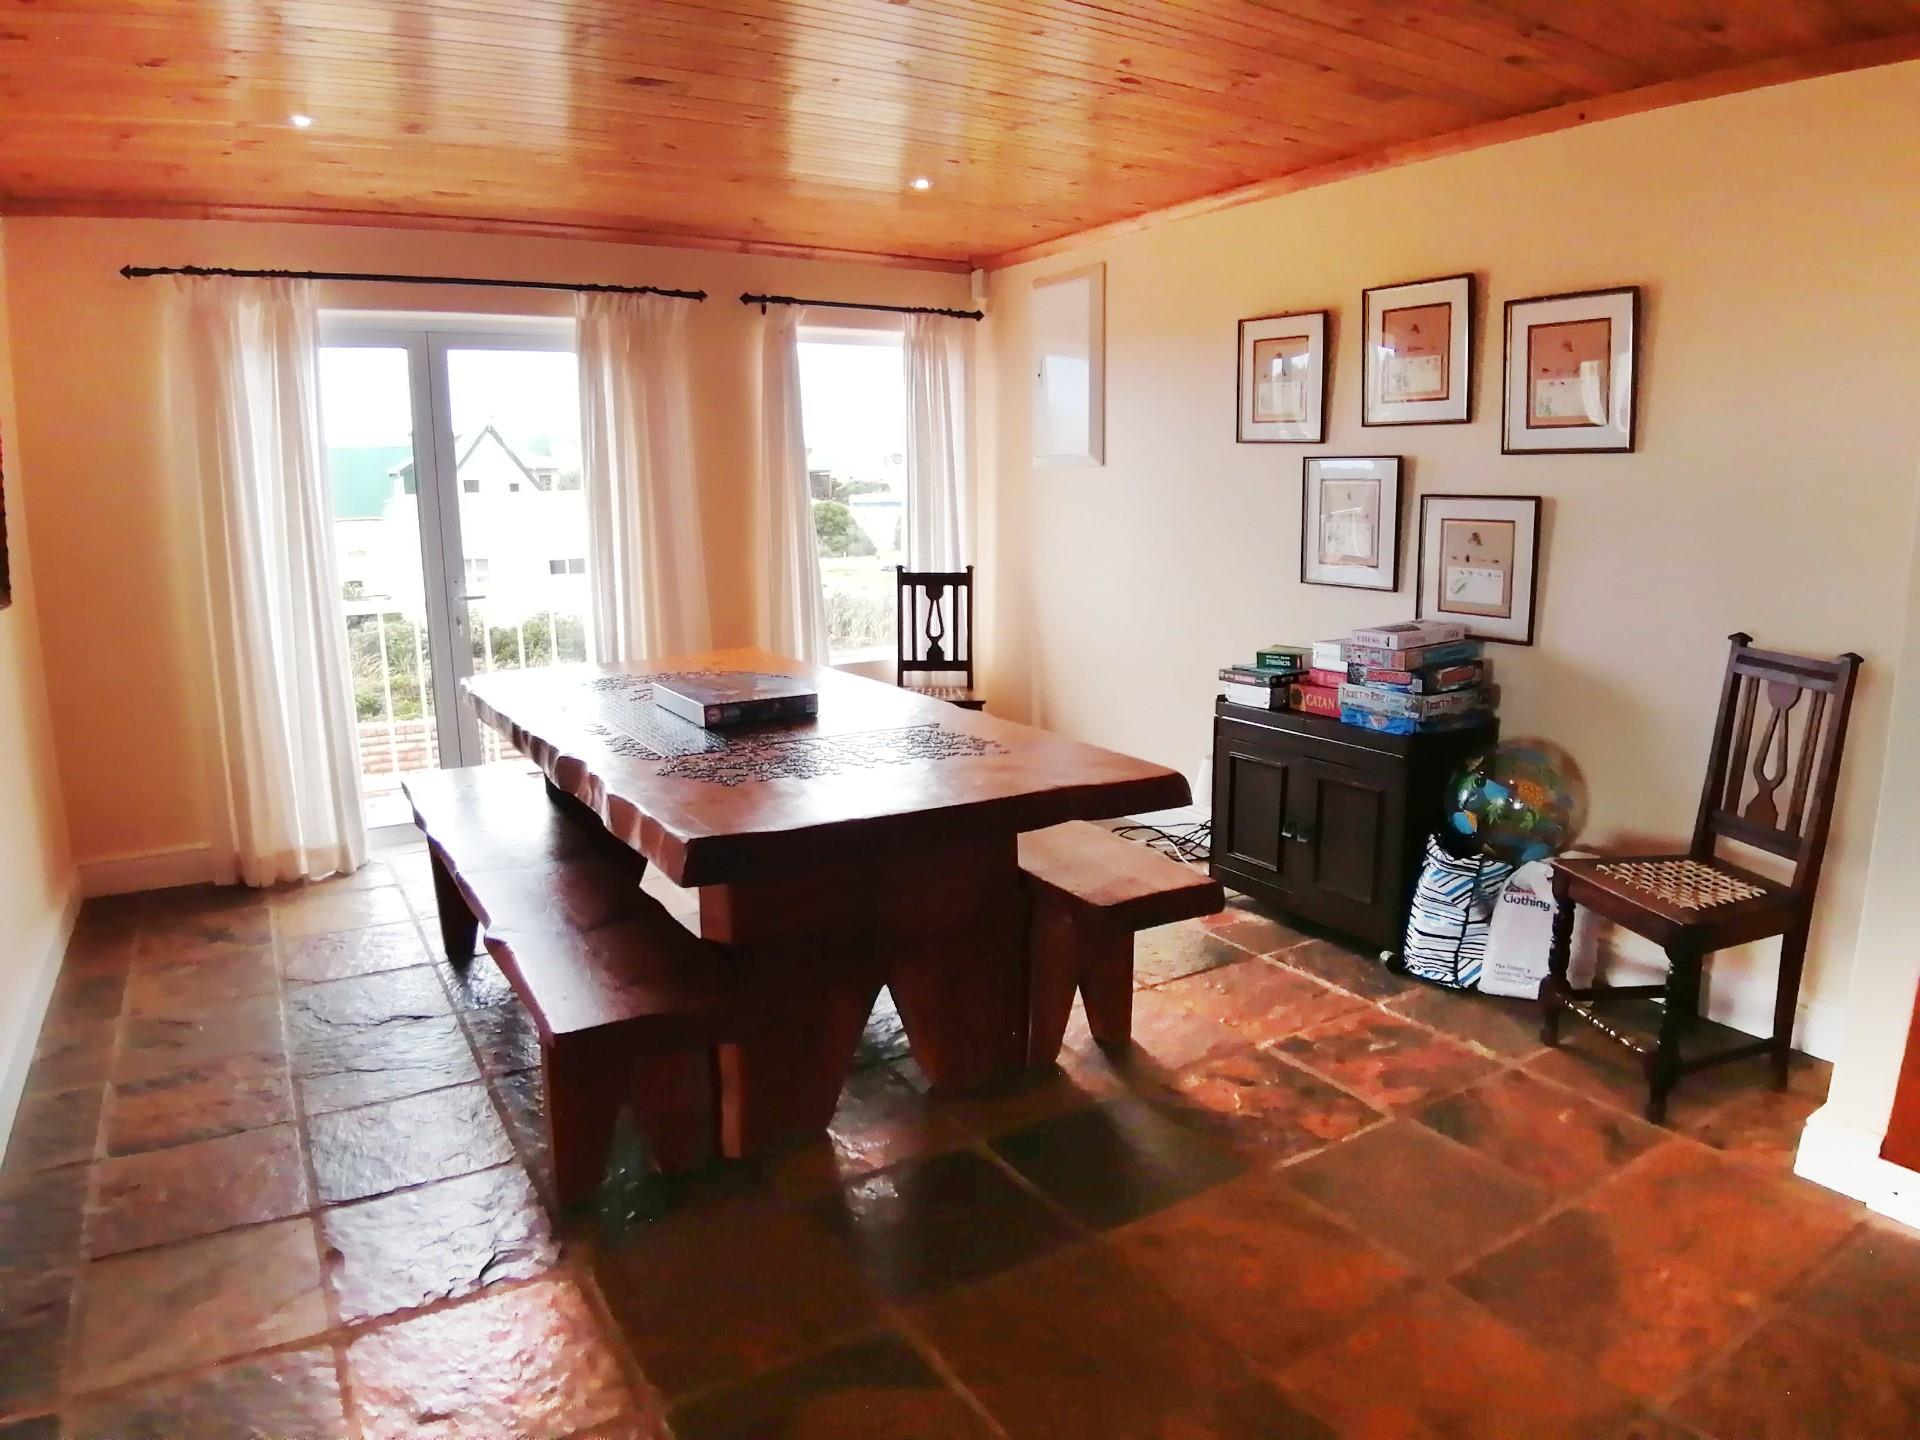 4 Bedroom House For Sale in Bettys Bay